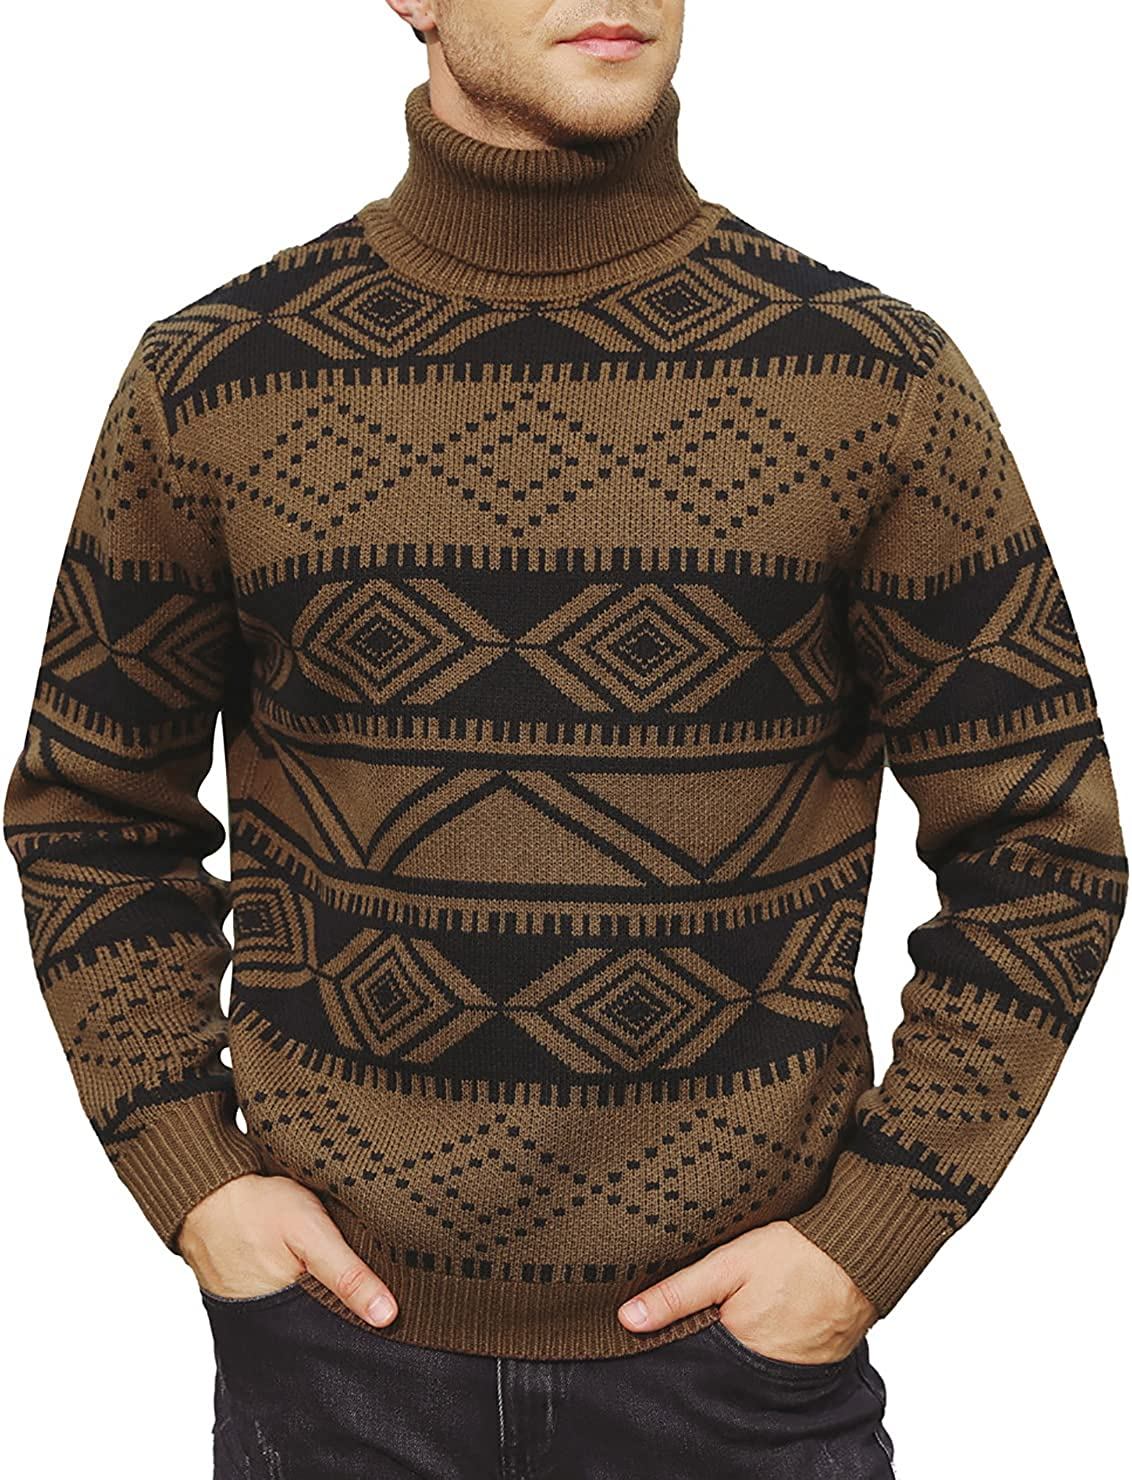 PJ PAUL JONES Mens Casual Slim Fit Turtleneck Sweater Cable Knit Thermal Pullover Sweaters